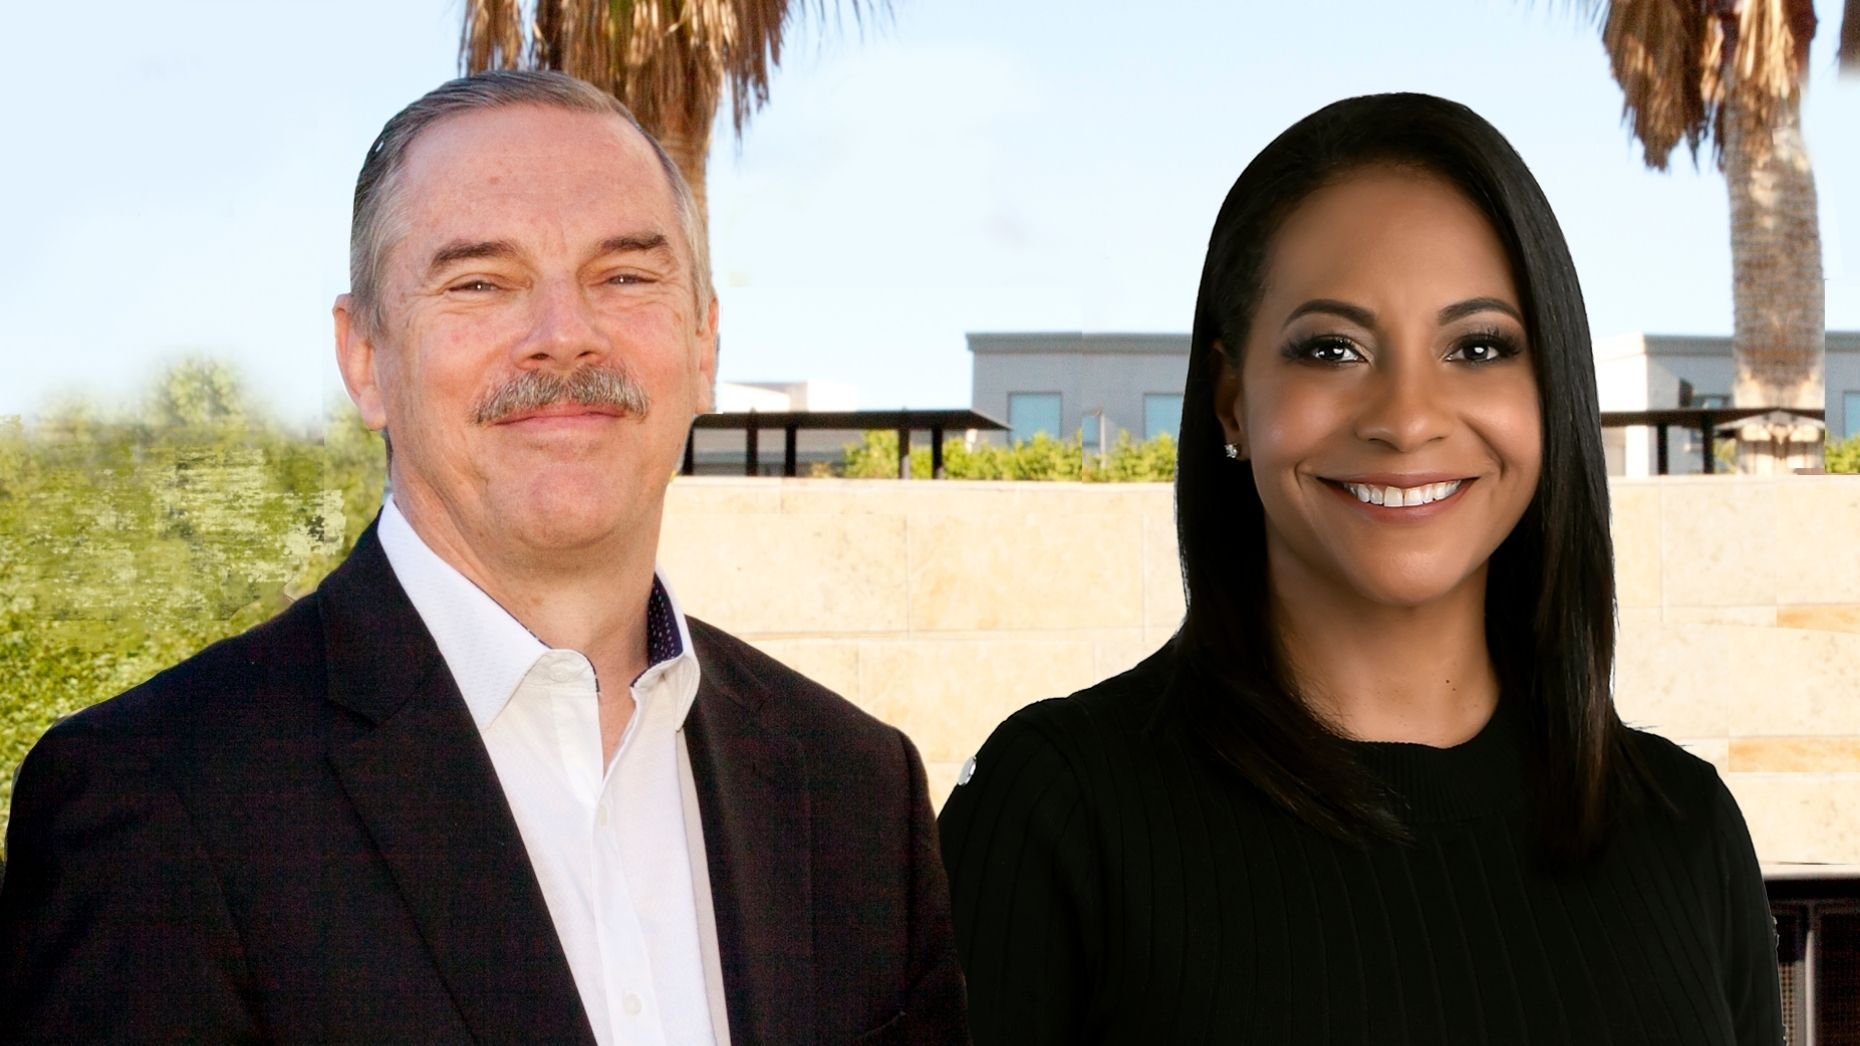 New nonprofit aims to increase diversity in real estate